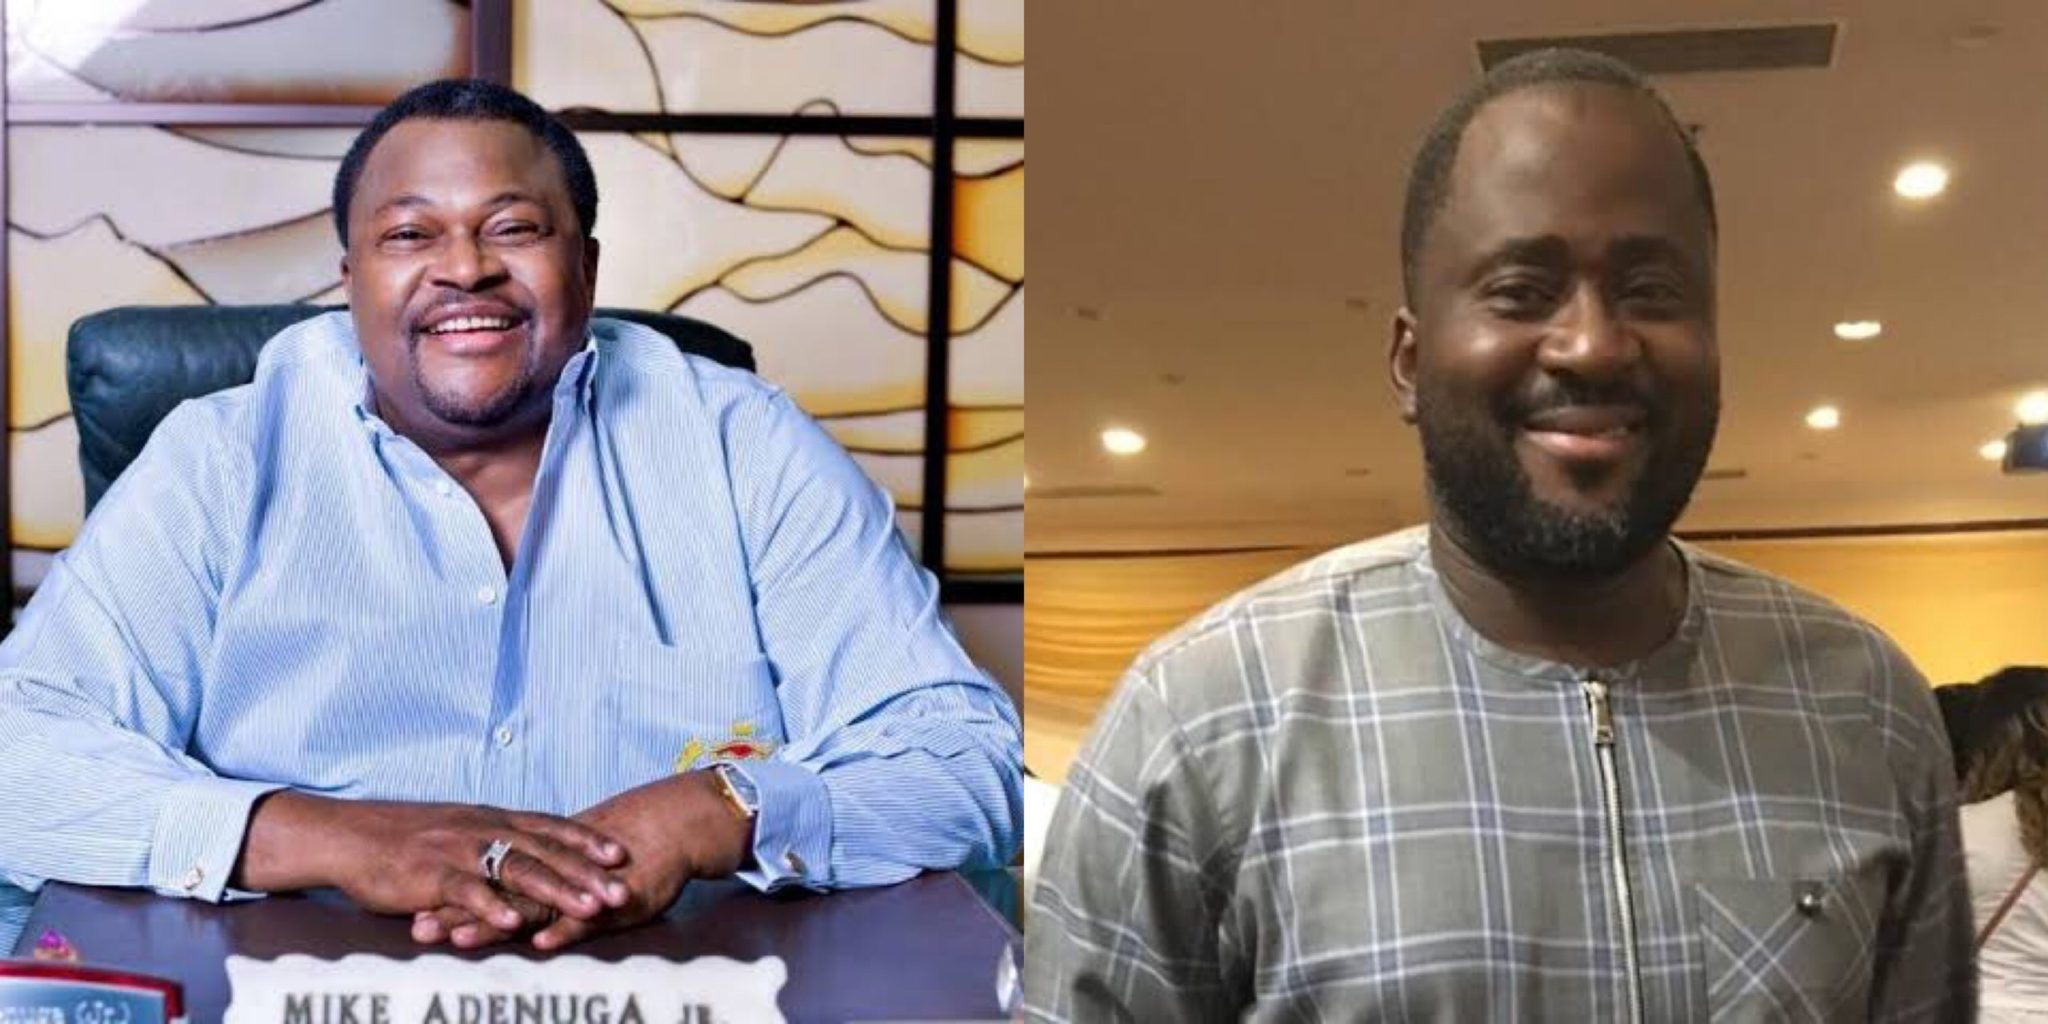 Desmond Elliot and Mike Adenuga allegedly in GAY romance - Blogger alleges